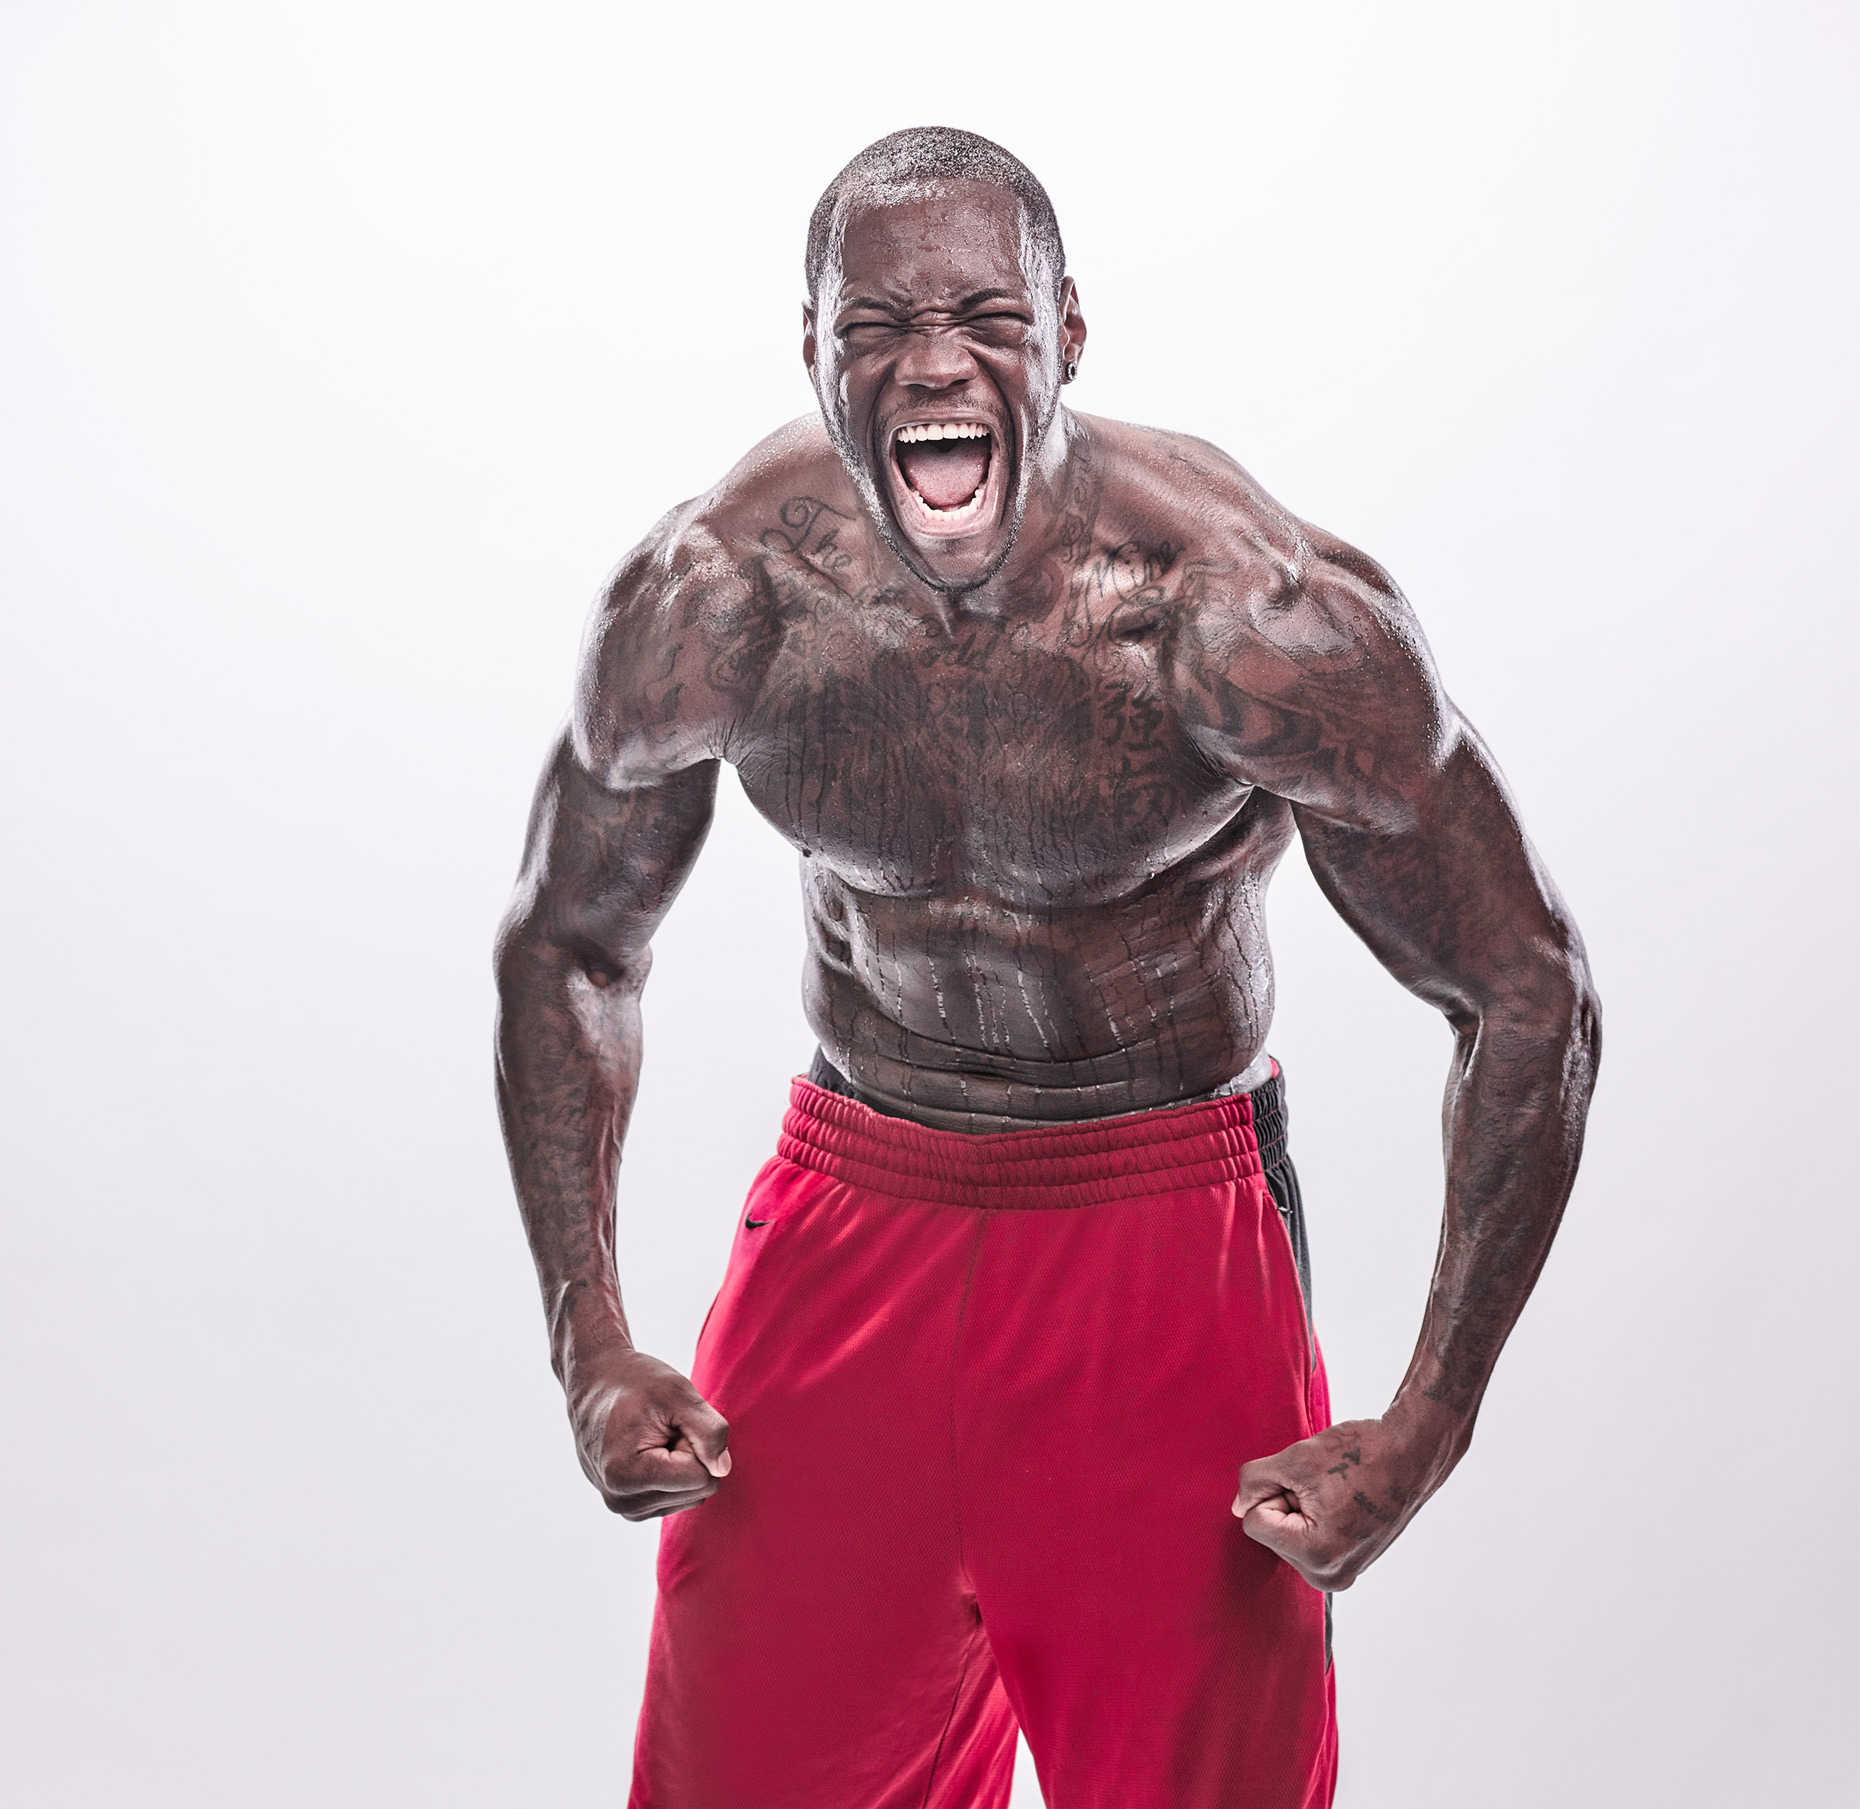 Deontay-Wilder-Scream-by-Michael-J-Moore_X